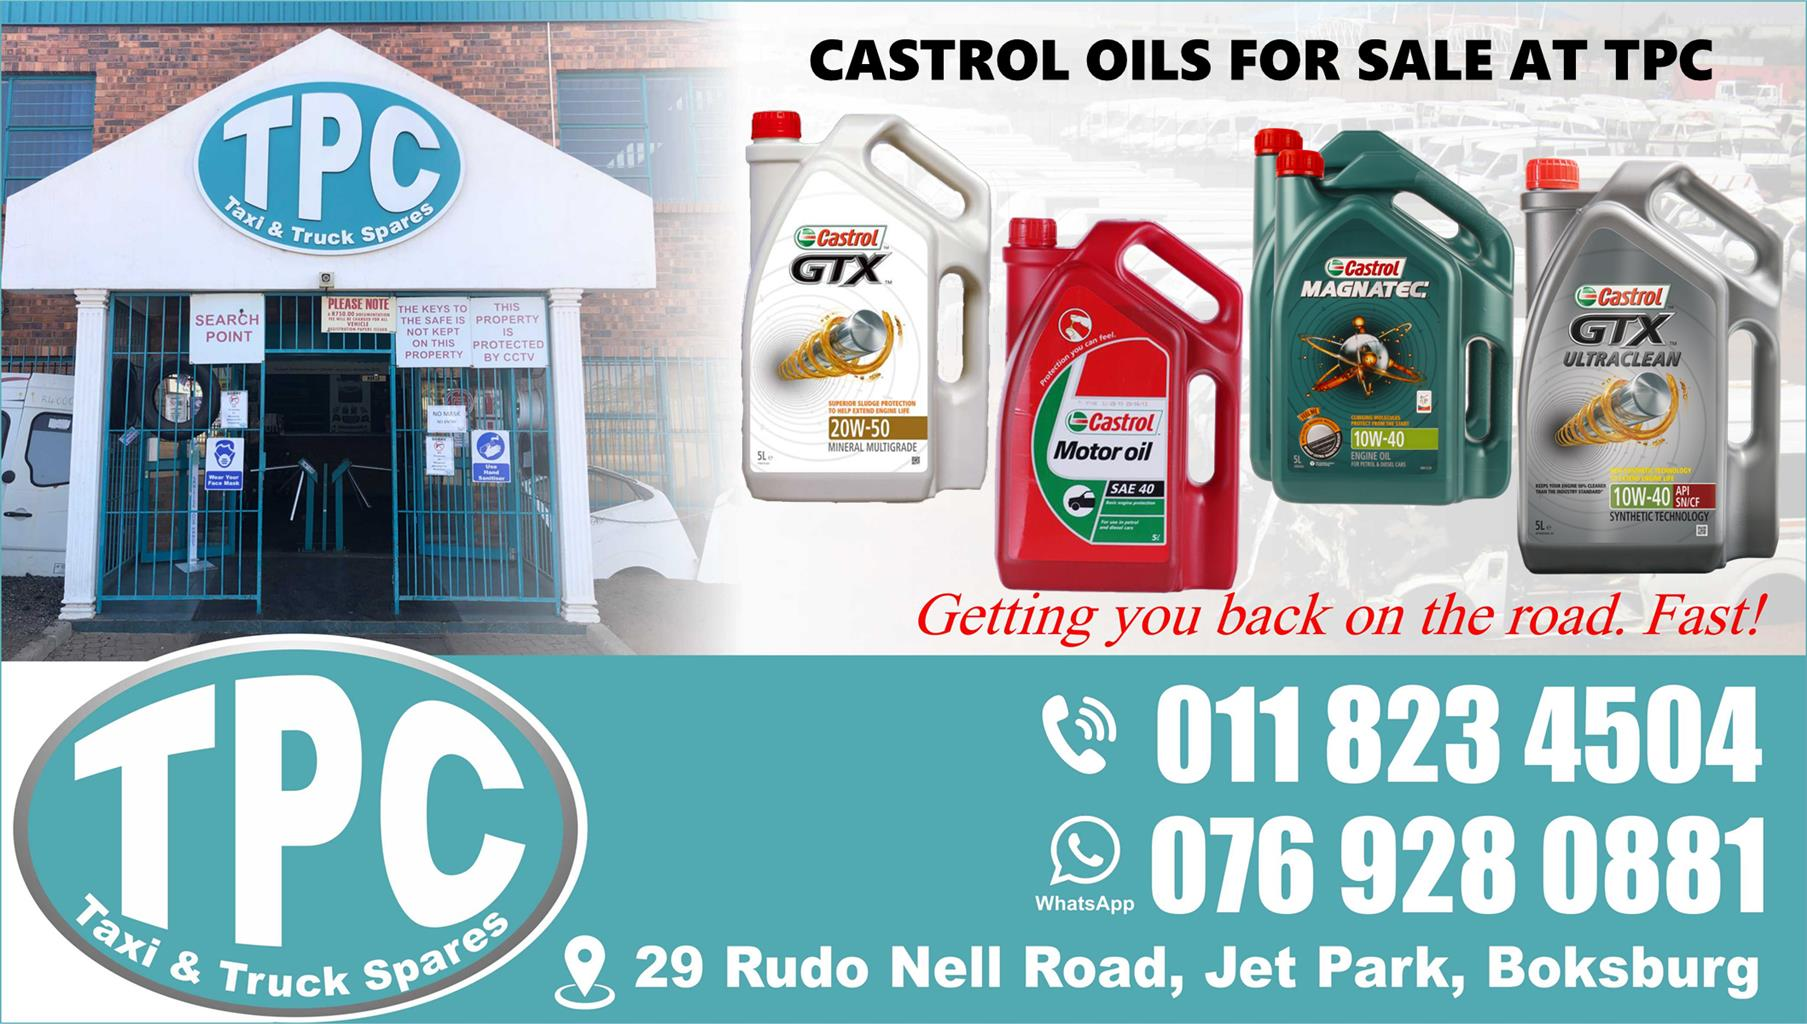 Castrol Oils - For Sale at TPC